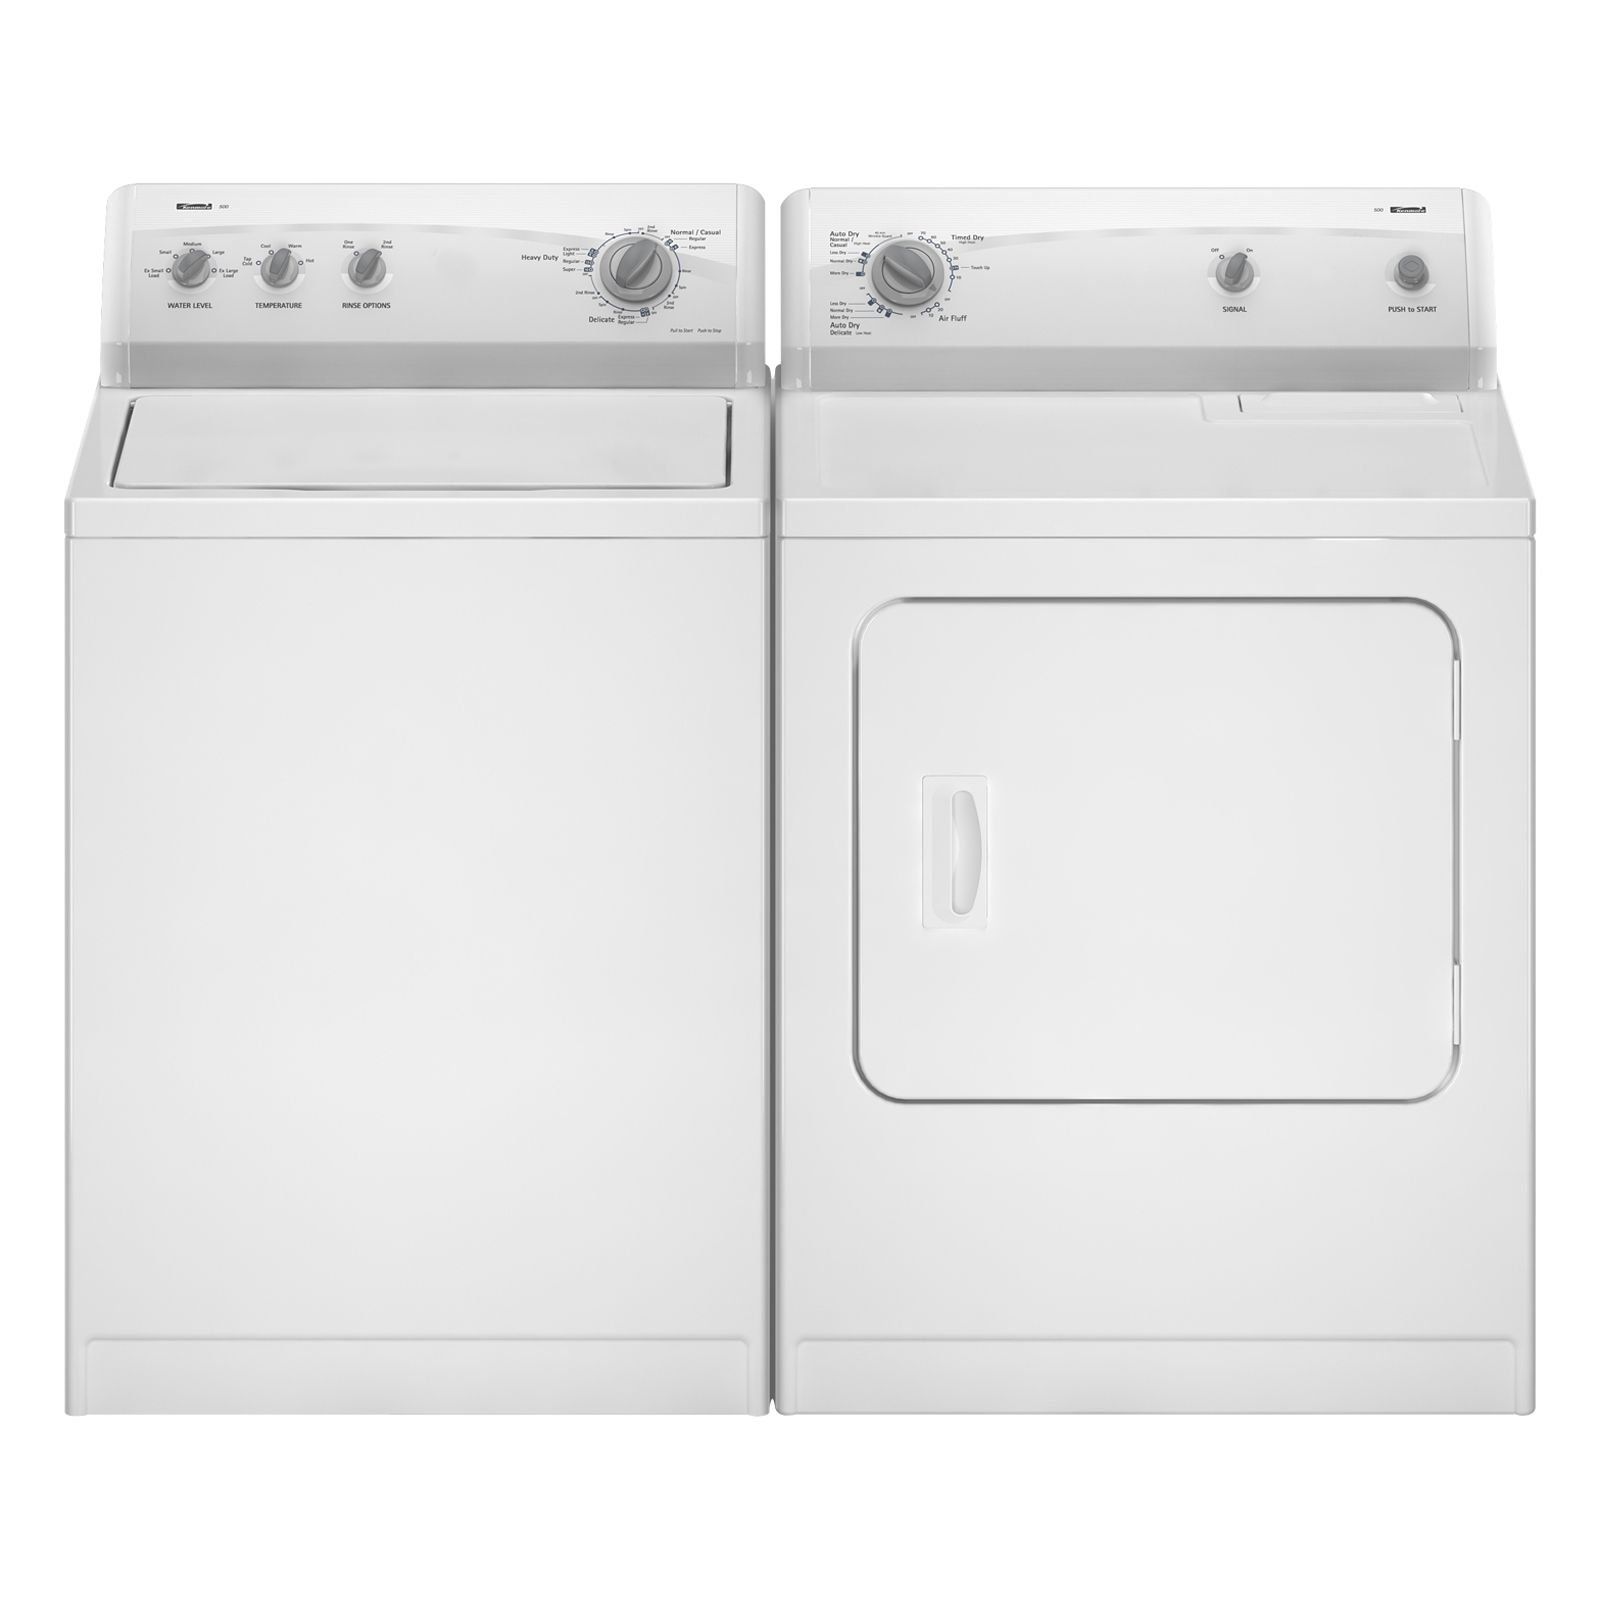 Kenmore 500 7.0 cu. ft. Electric Dryer - 6952